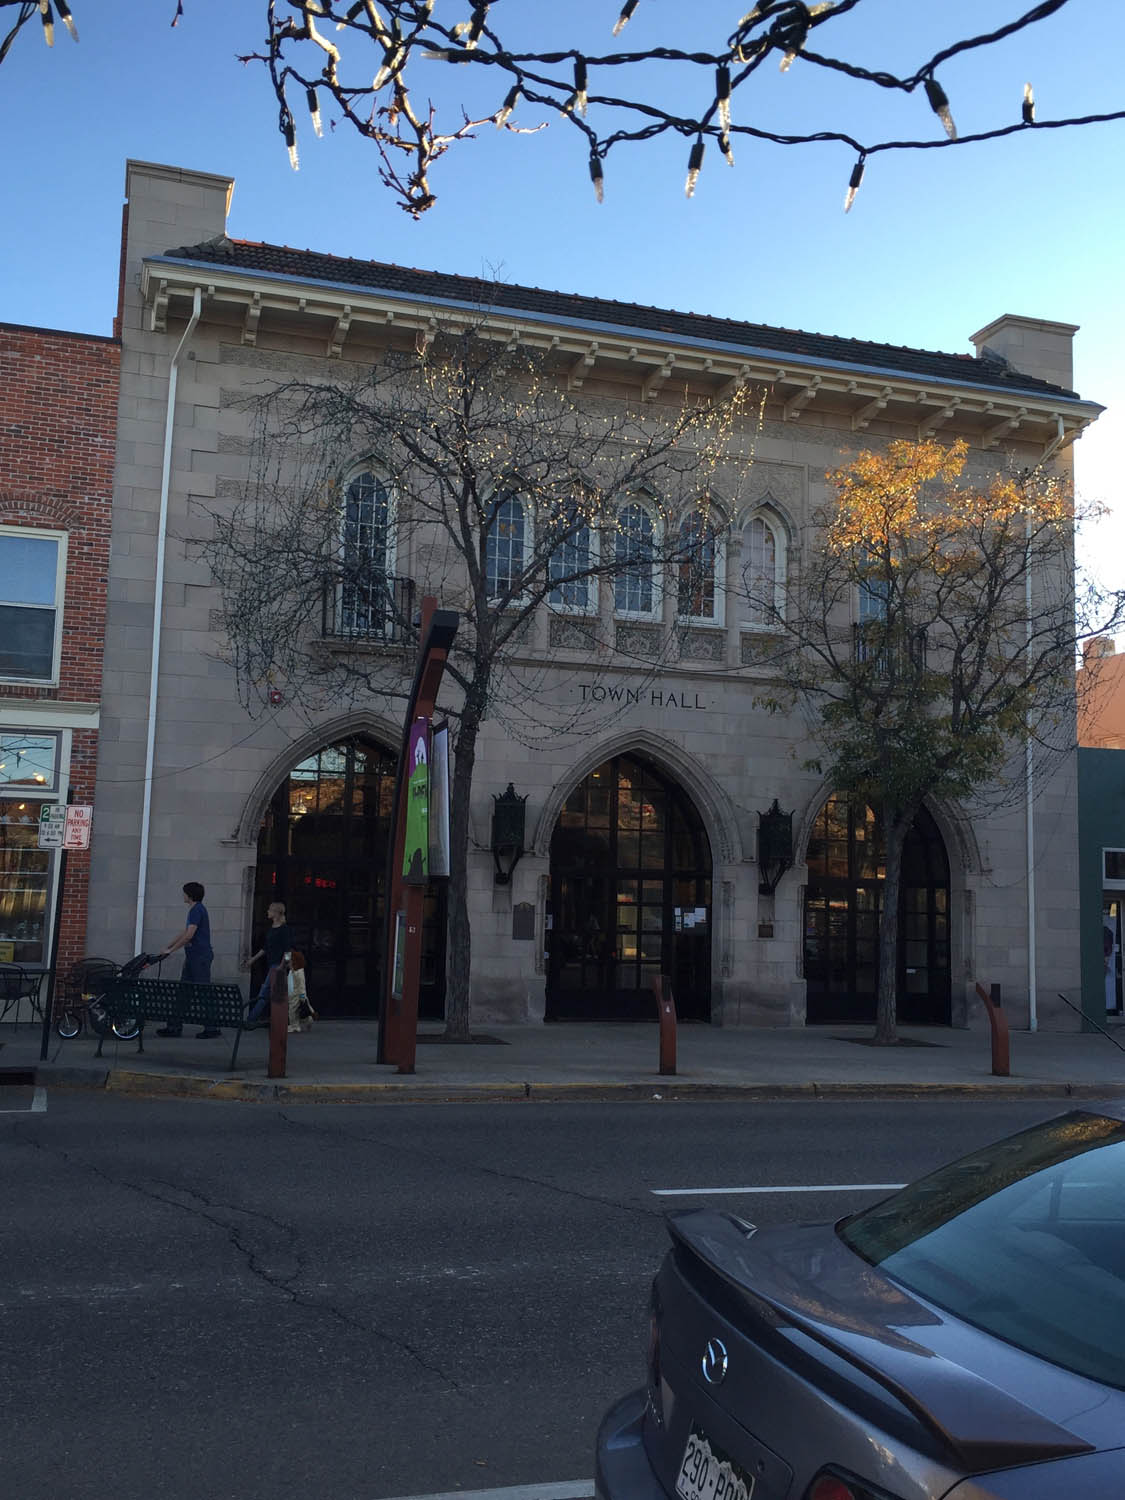 Theater still in use in historic old downtown Littleton, CO